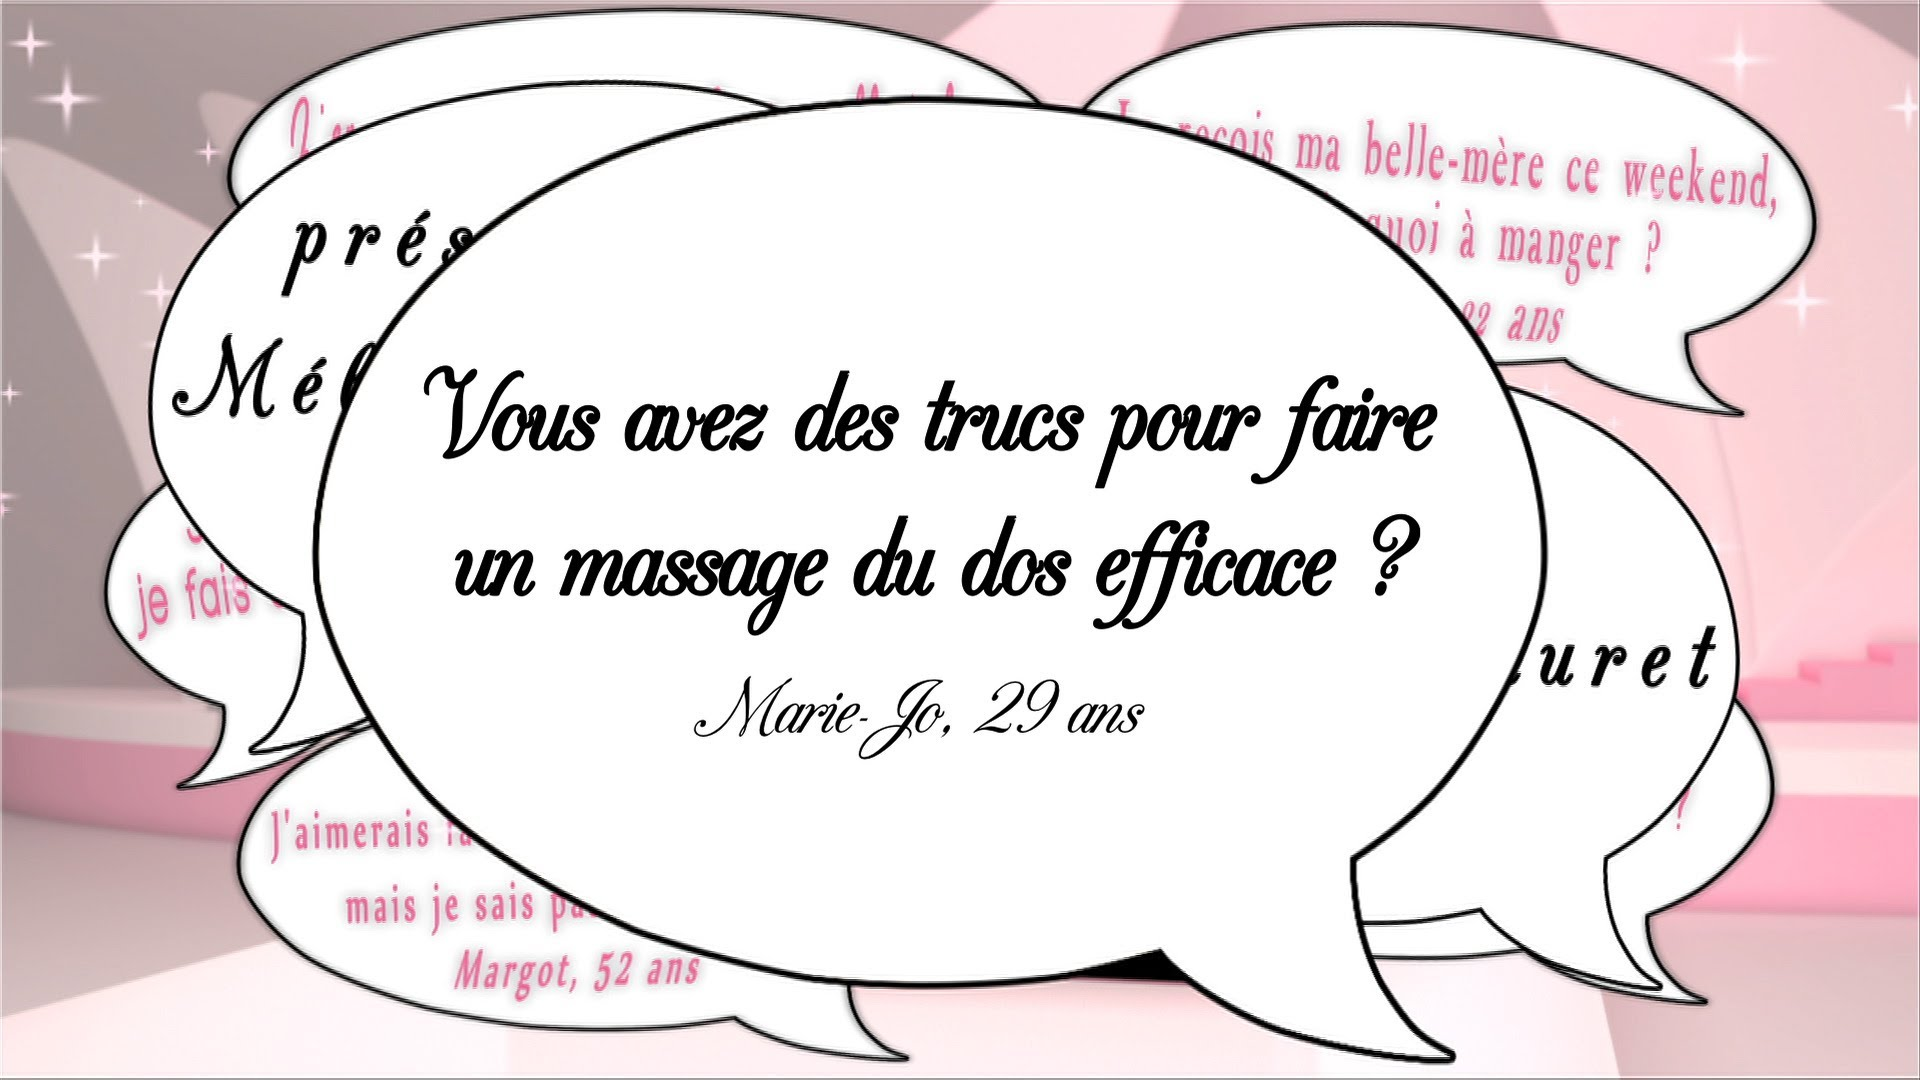 Un massage efficace